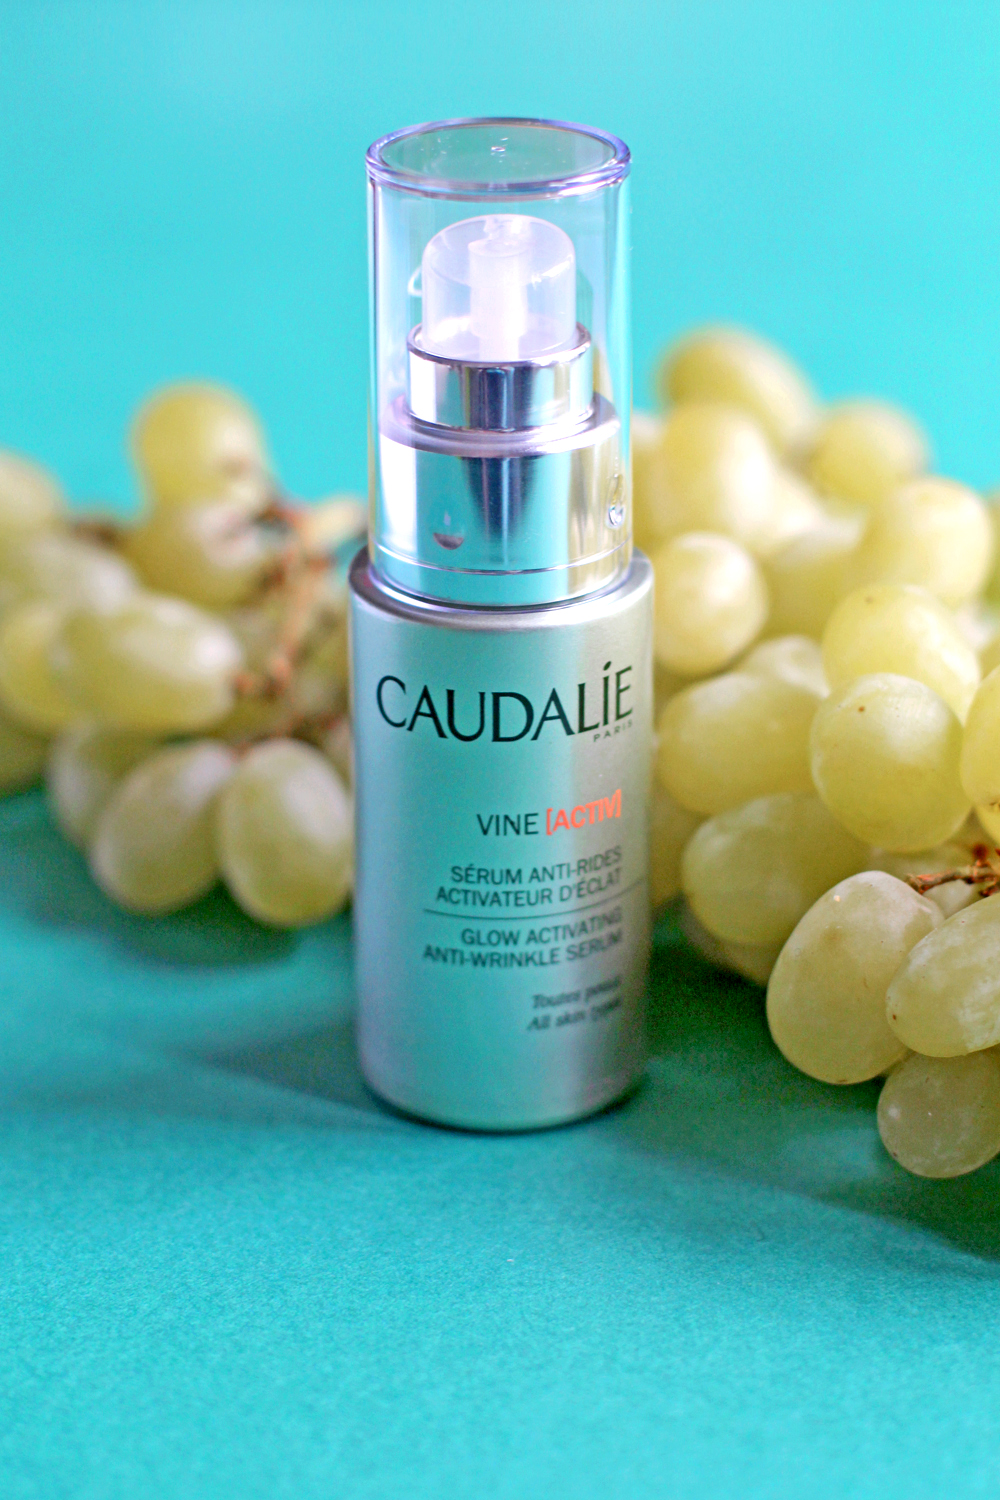 Caudalie VineActive Glow Activating Anti-Wrinkle Serum - UK beauty blog